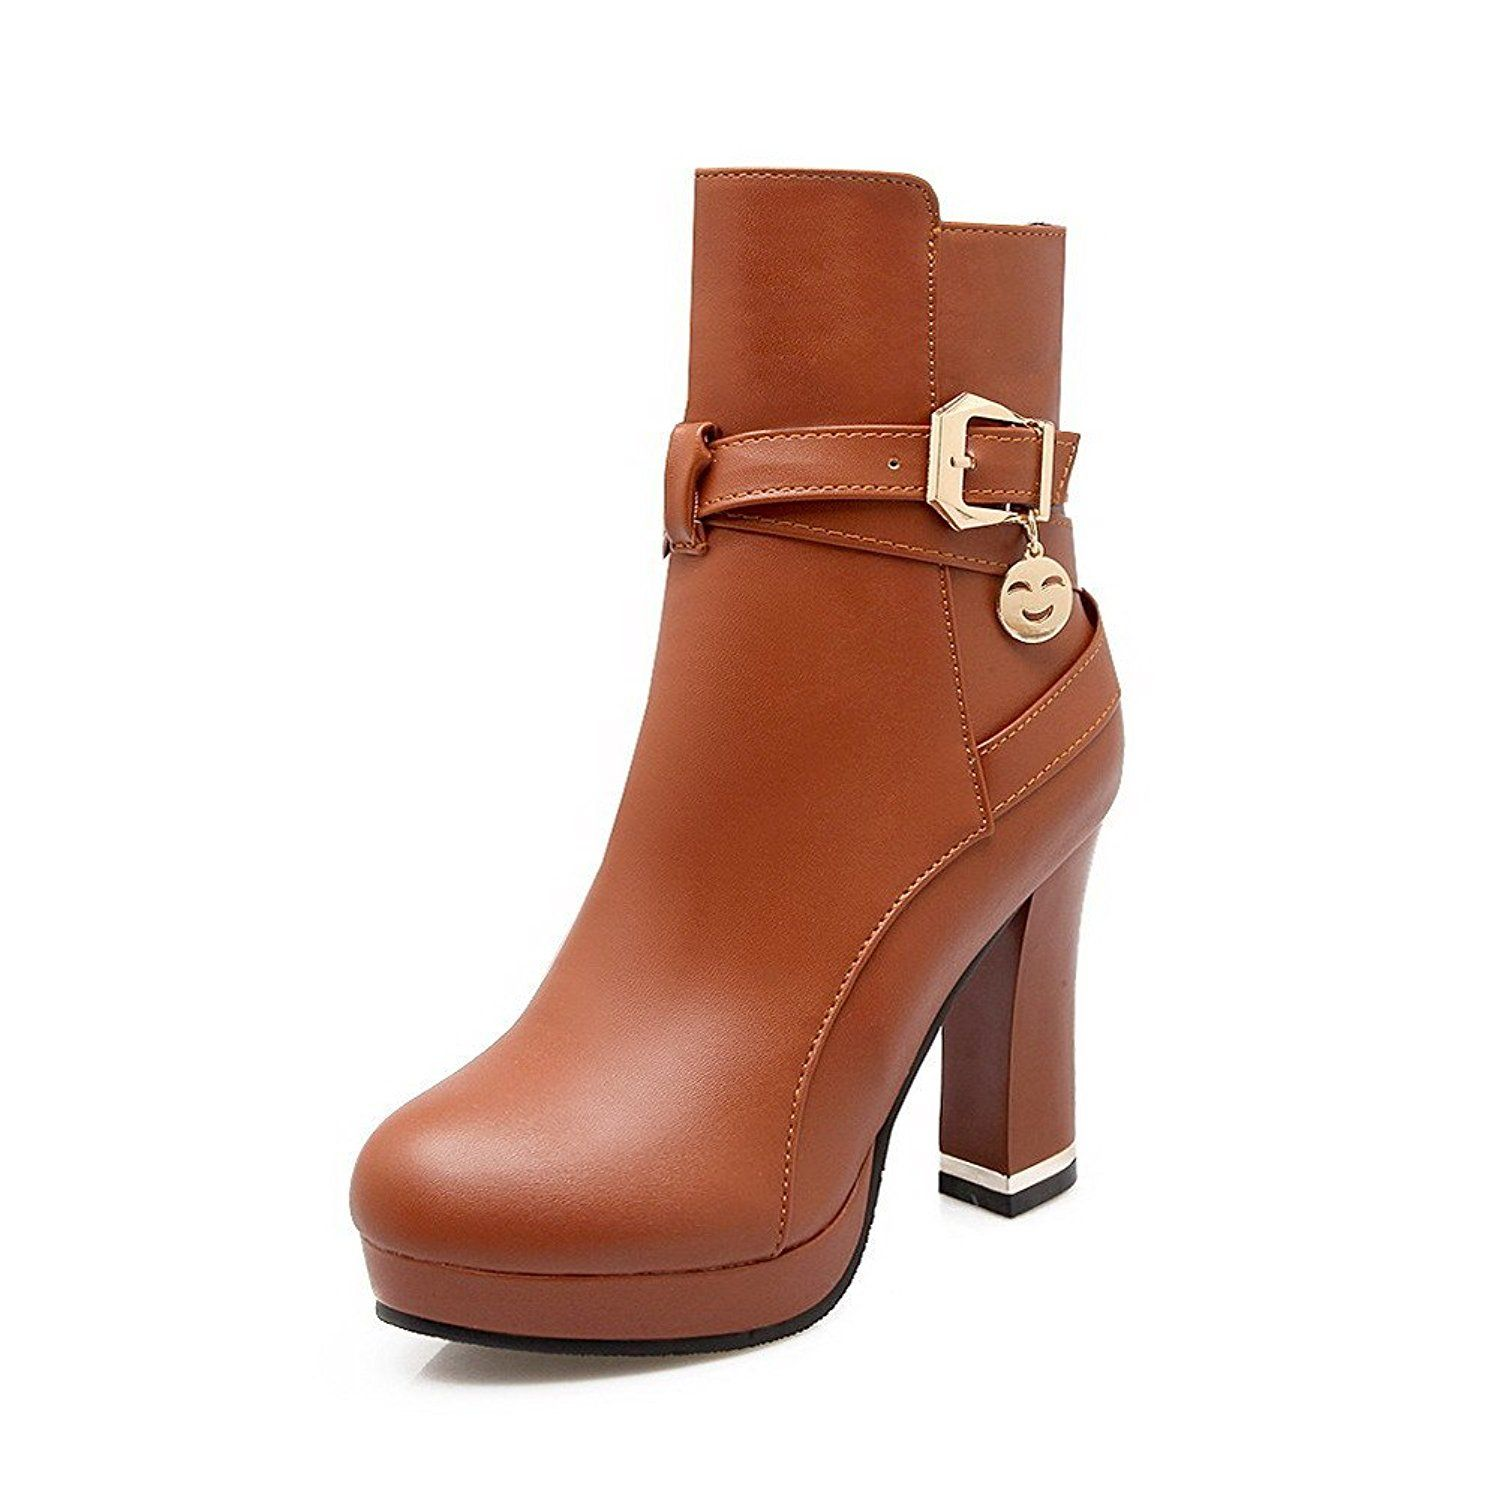 Women's Solid Pu High Heels Buckle Round Closed Toe Boots